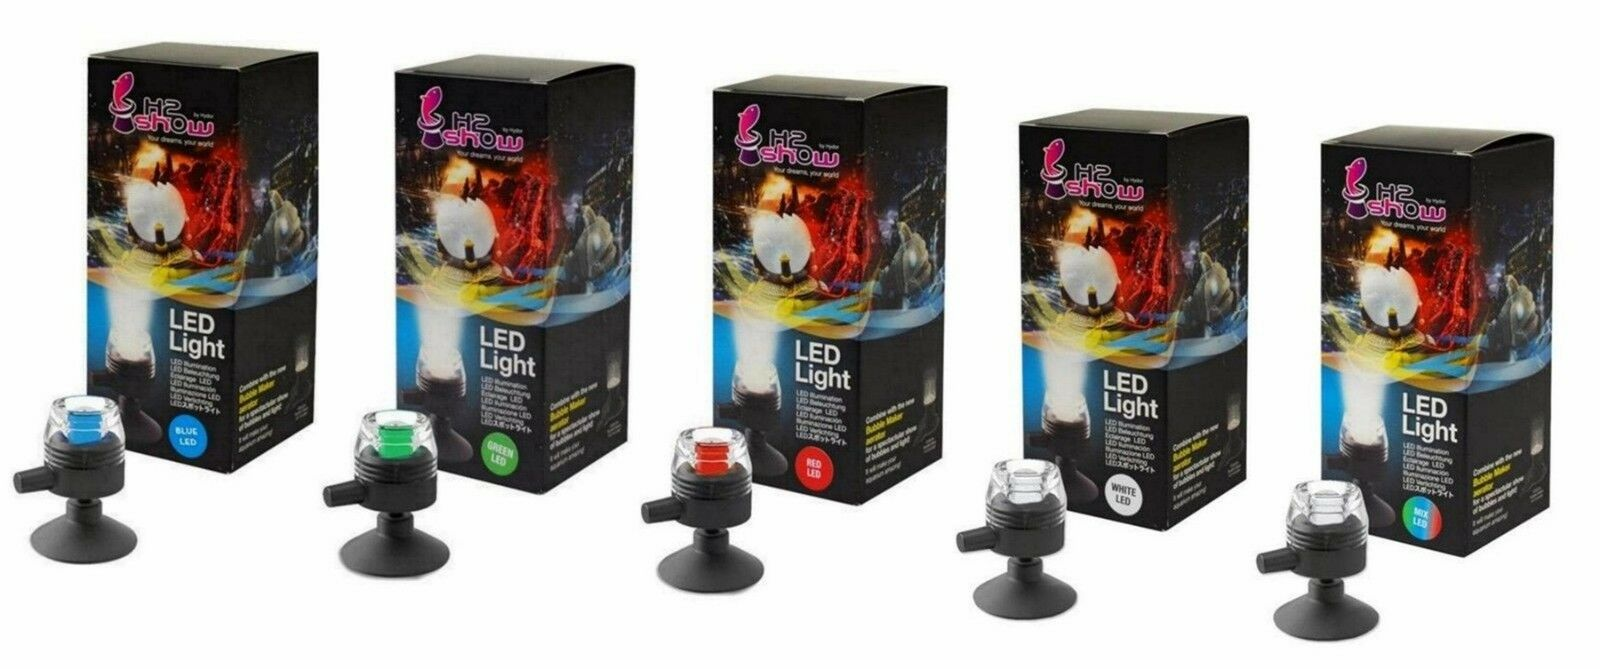 HYDOR H2SHOW UNDERWATER LED LIGHTING (with 2 year guarantee)